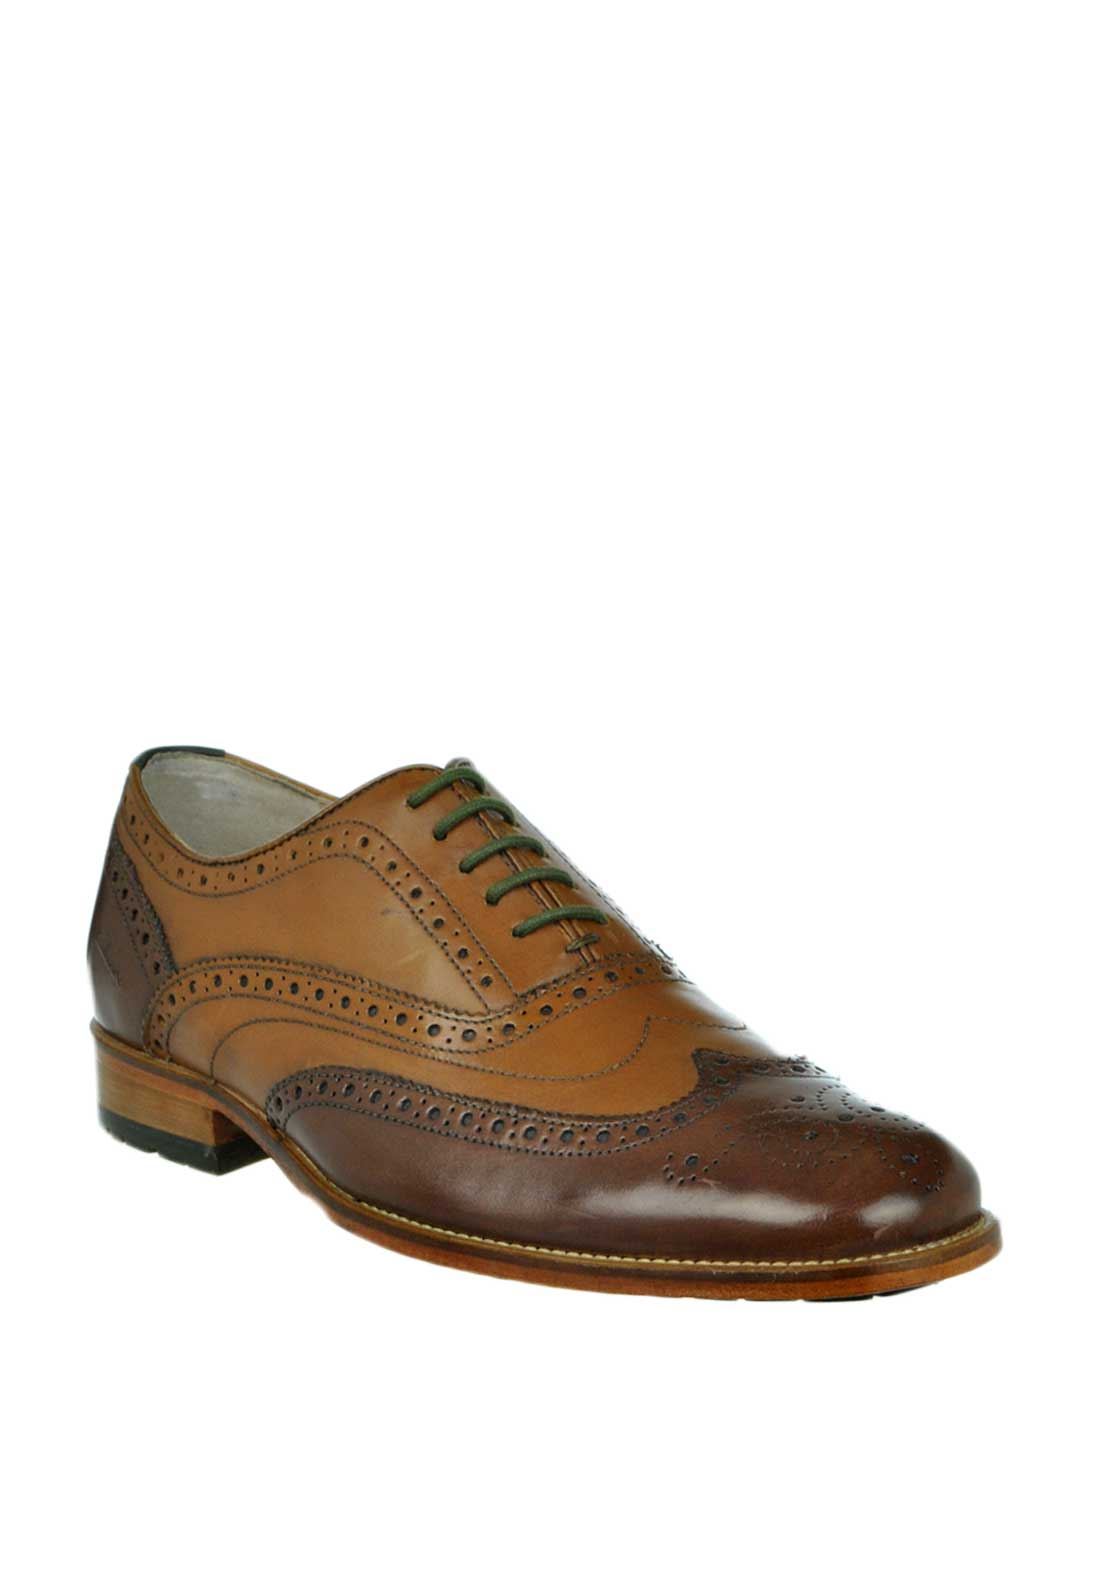 Clarks Mens Penton Limit Two Tone Leather Brogue Shoe, Tan